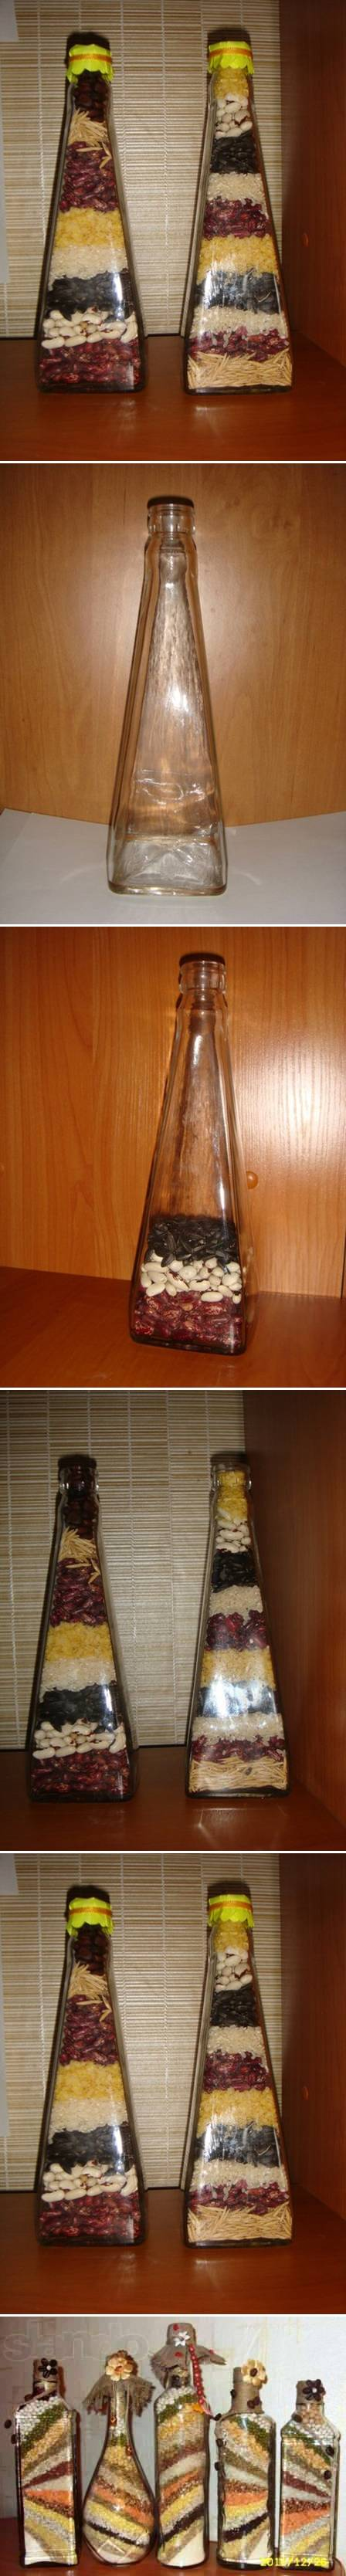 How To Make Decorative Bottle with Seeds step by step DIY tutorial instructions